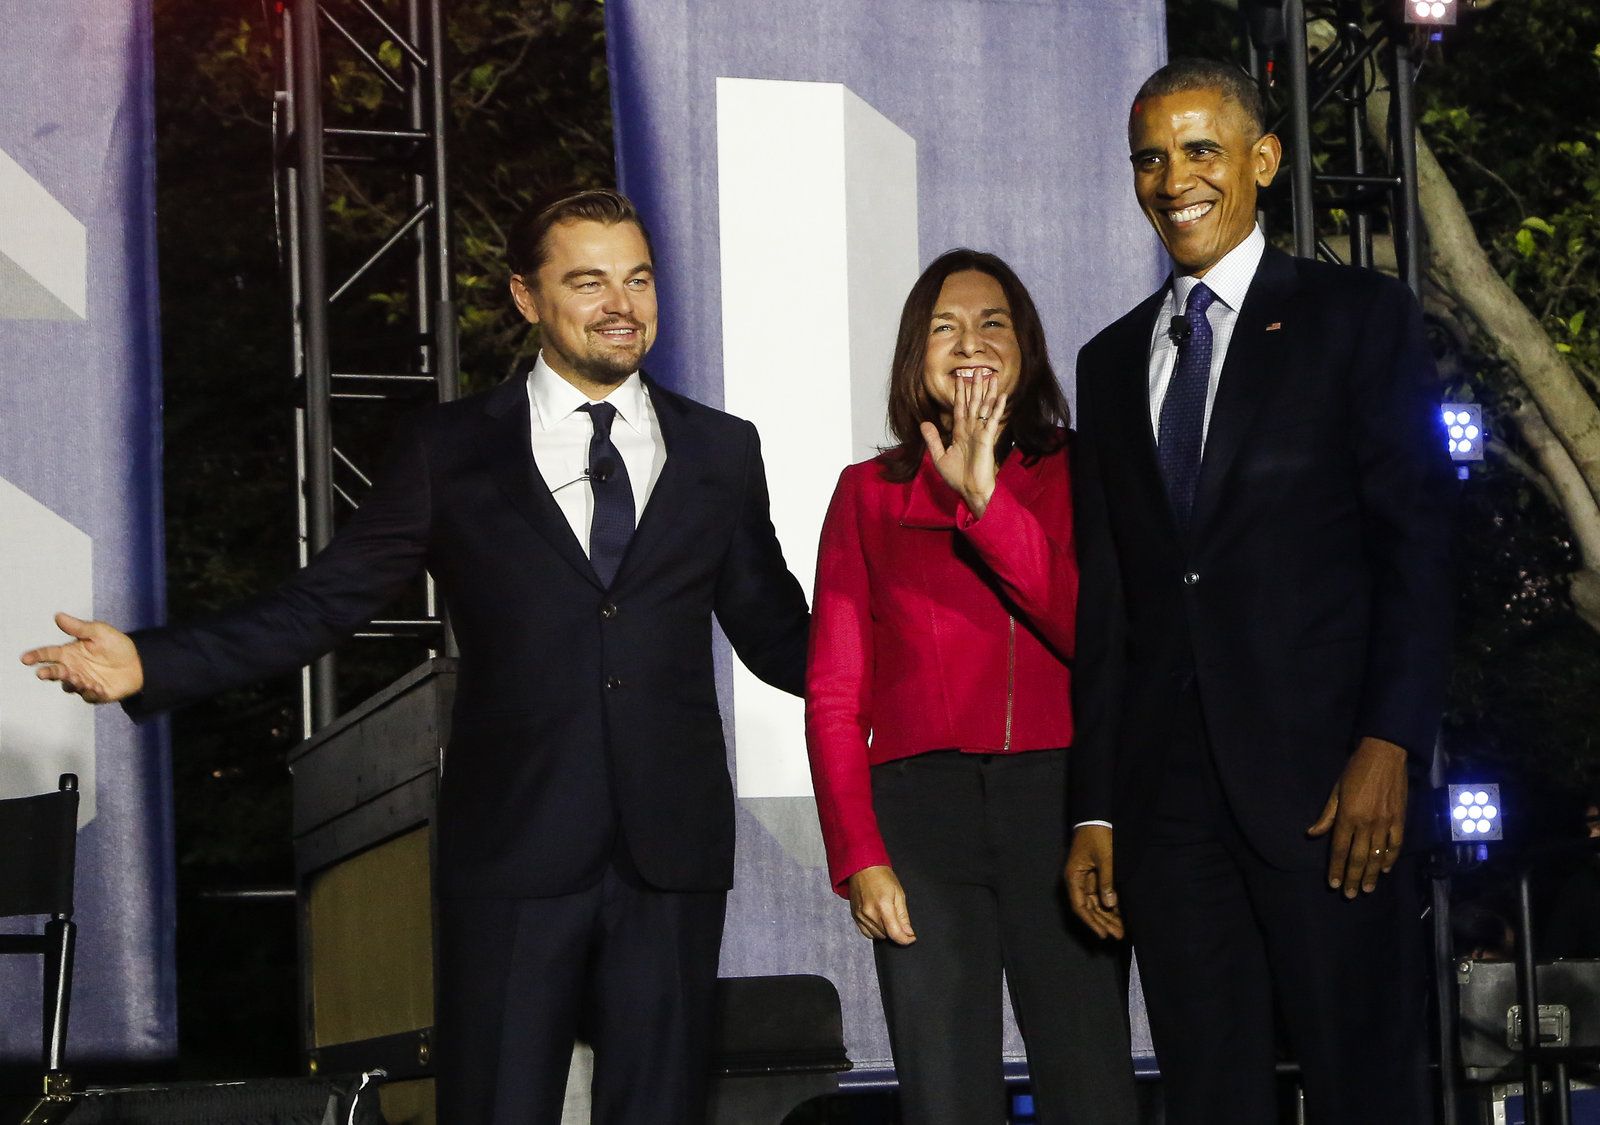 President Obama hosts a climate change panel at the White House with Leonardo DiCaprio and climate scientist Katharine Hayhoe